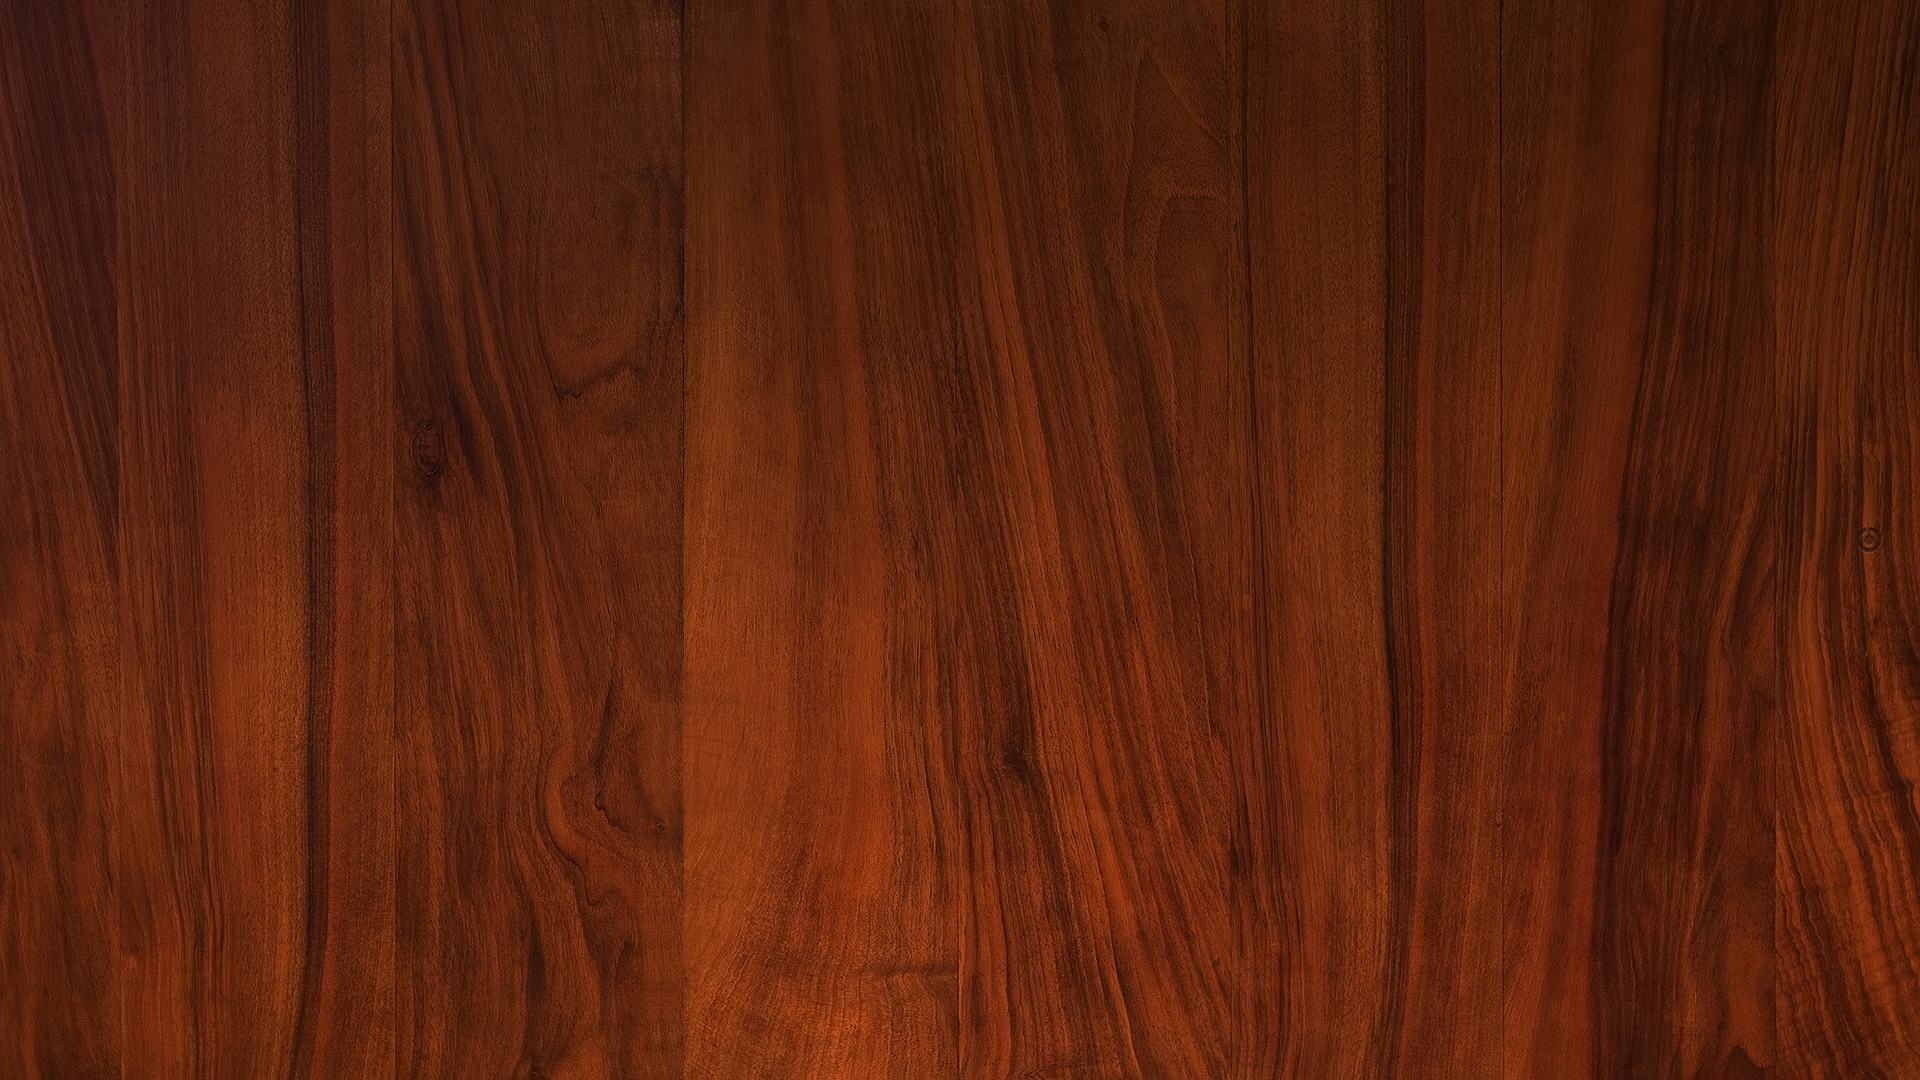 Hd Wood Picture Backgrounds For Powerpoint Templates Ppt Backgrounds